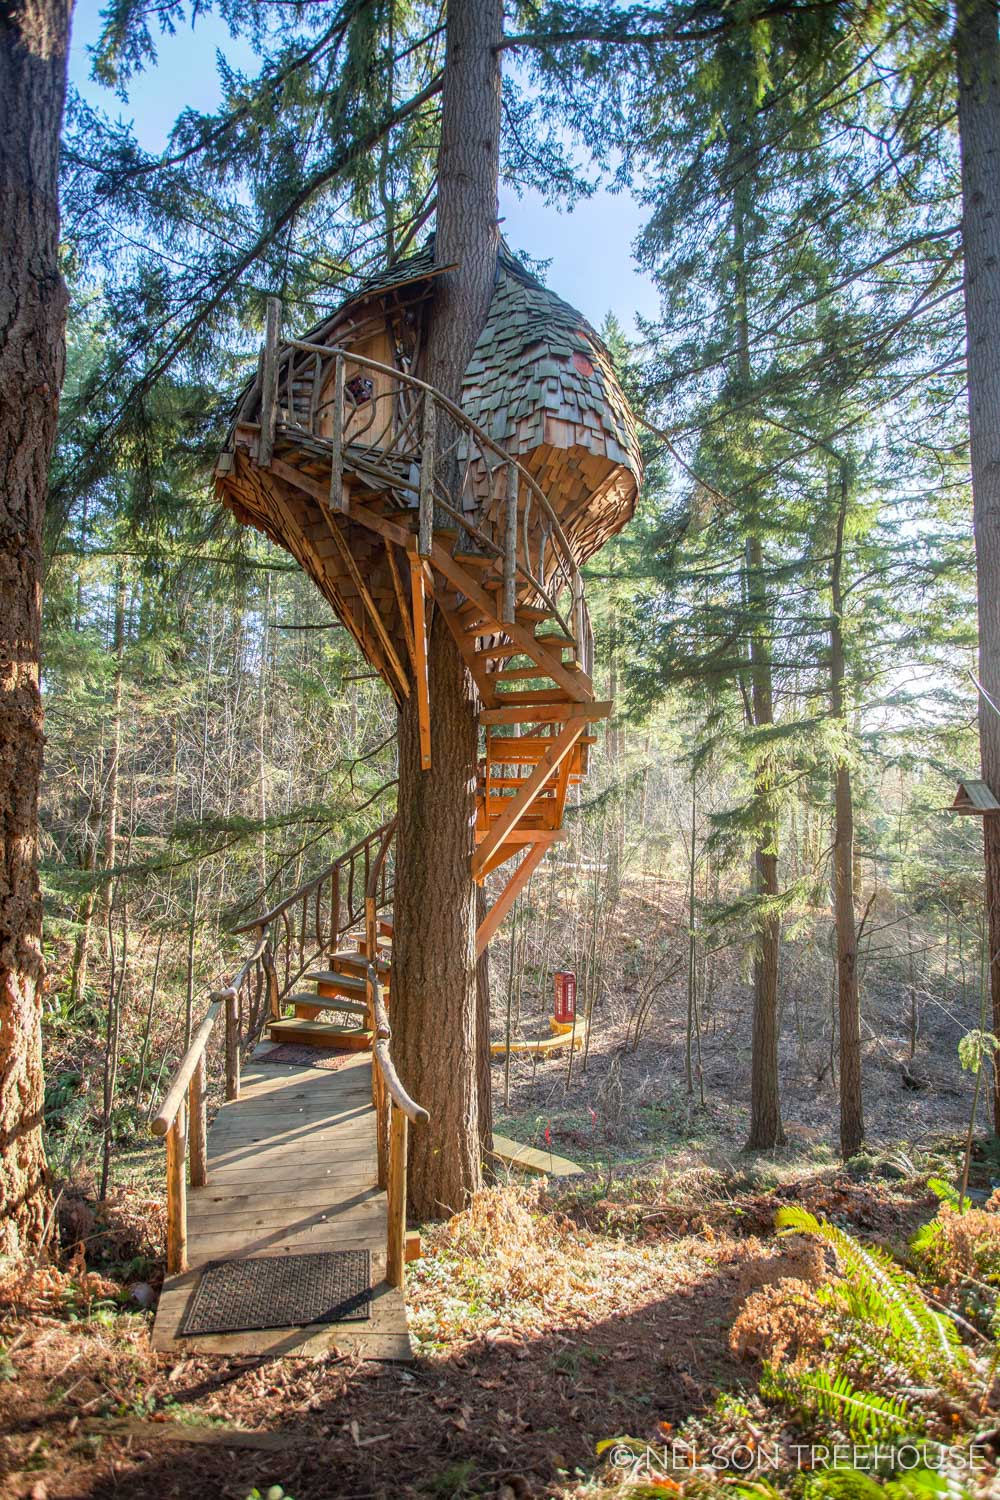 Beehive Treehouse - Nelson Treehouse